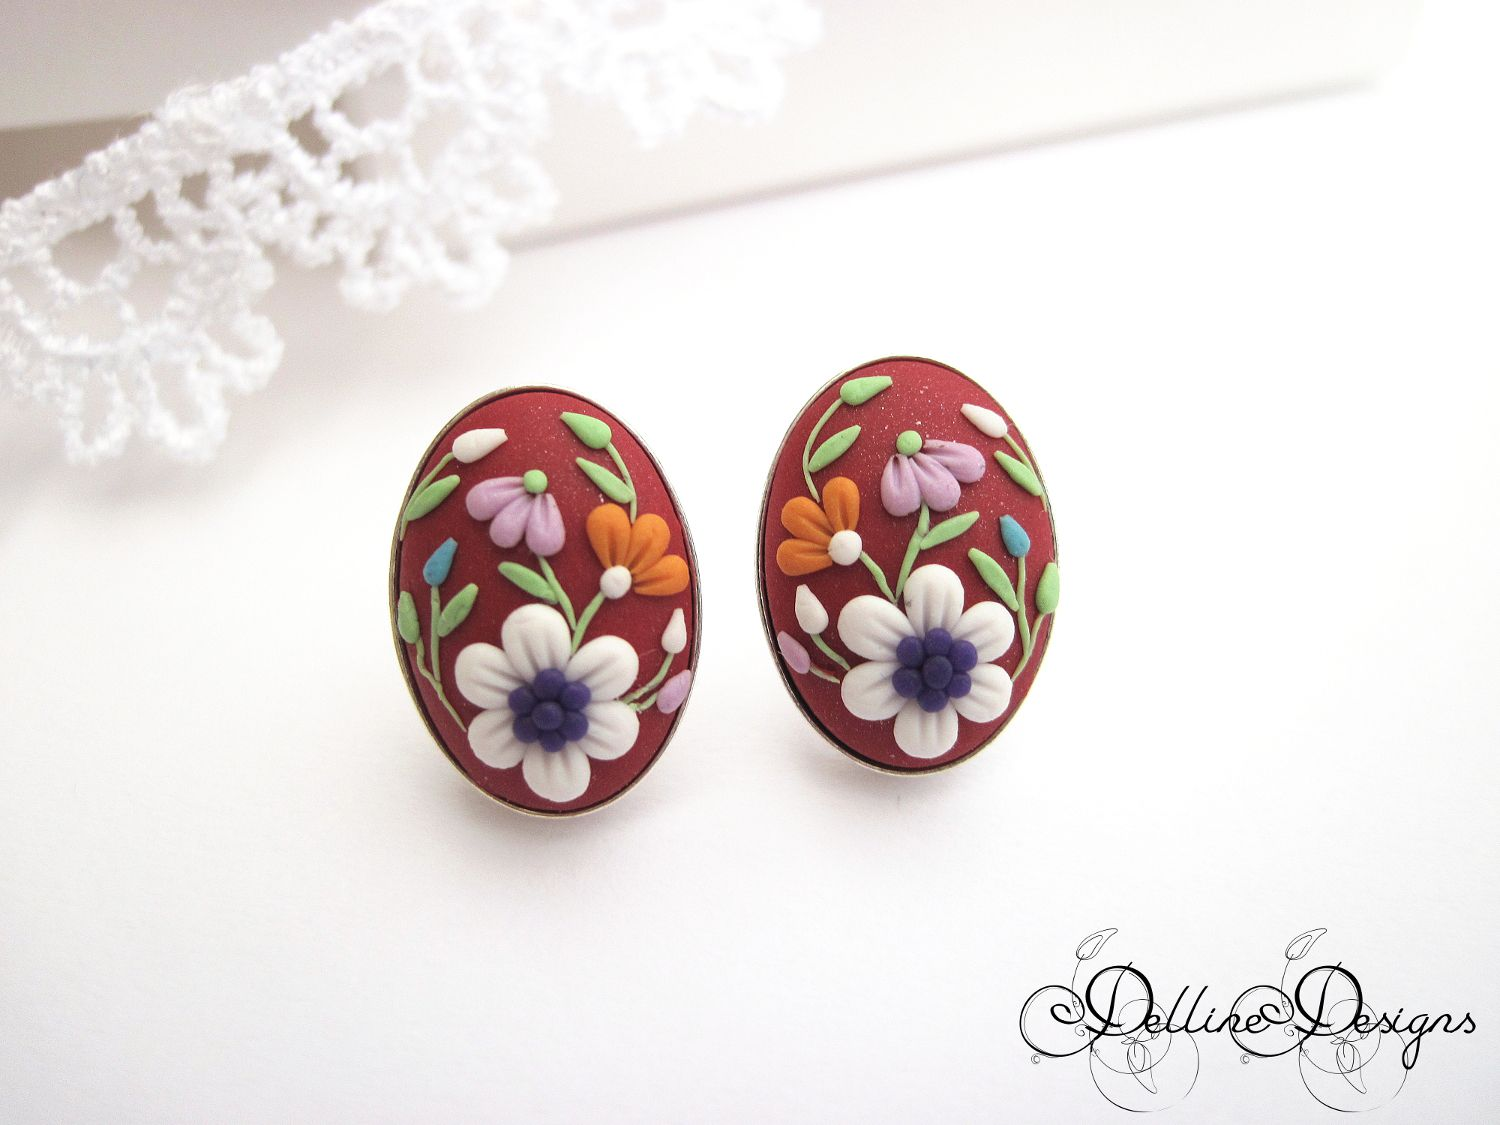 sterling handsculpted stud flowers applique filigree gift present red earrings unique floral jewelry handmade polymer clay silver embroidery